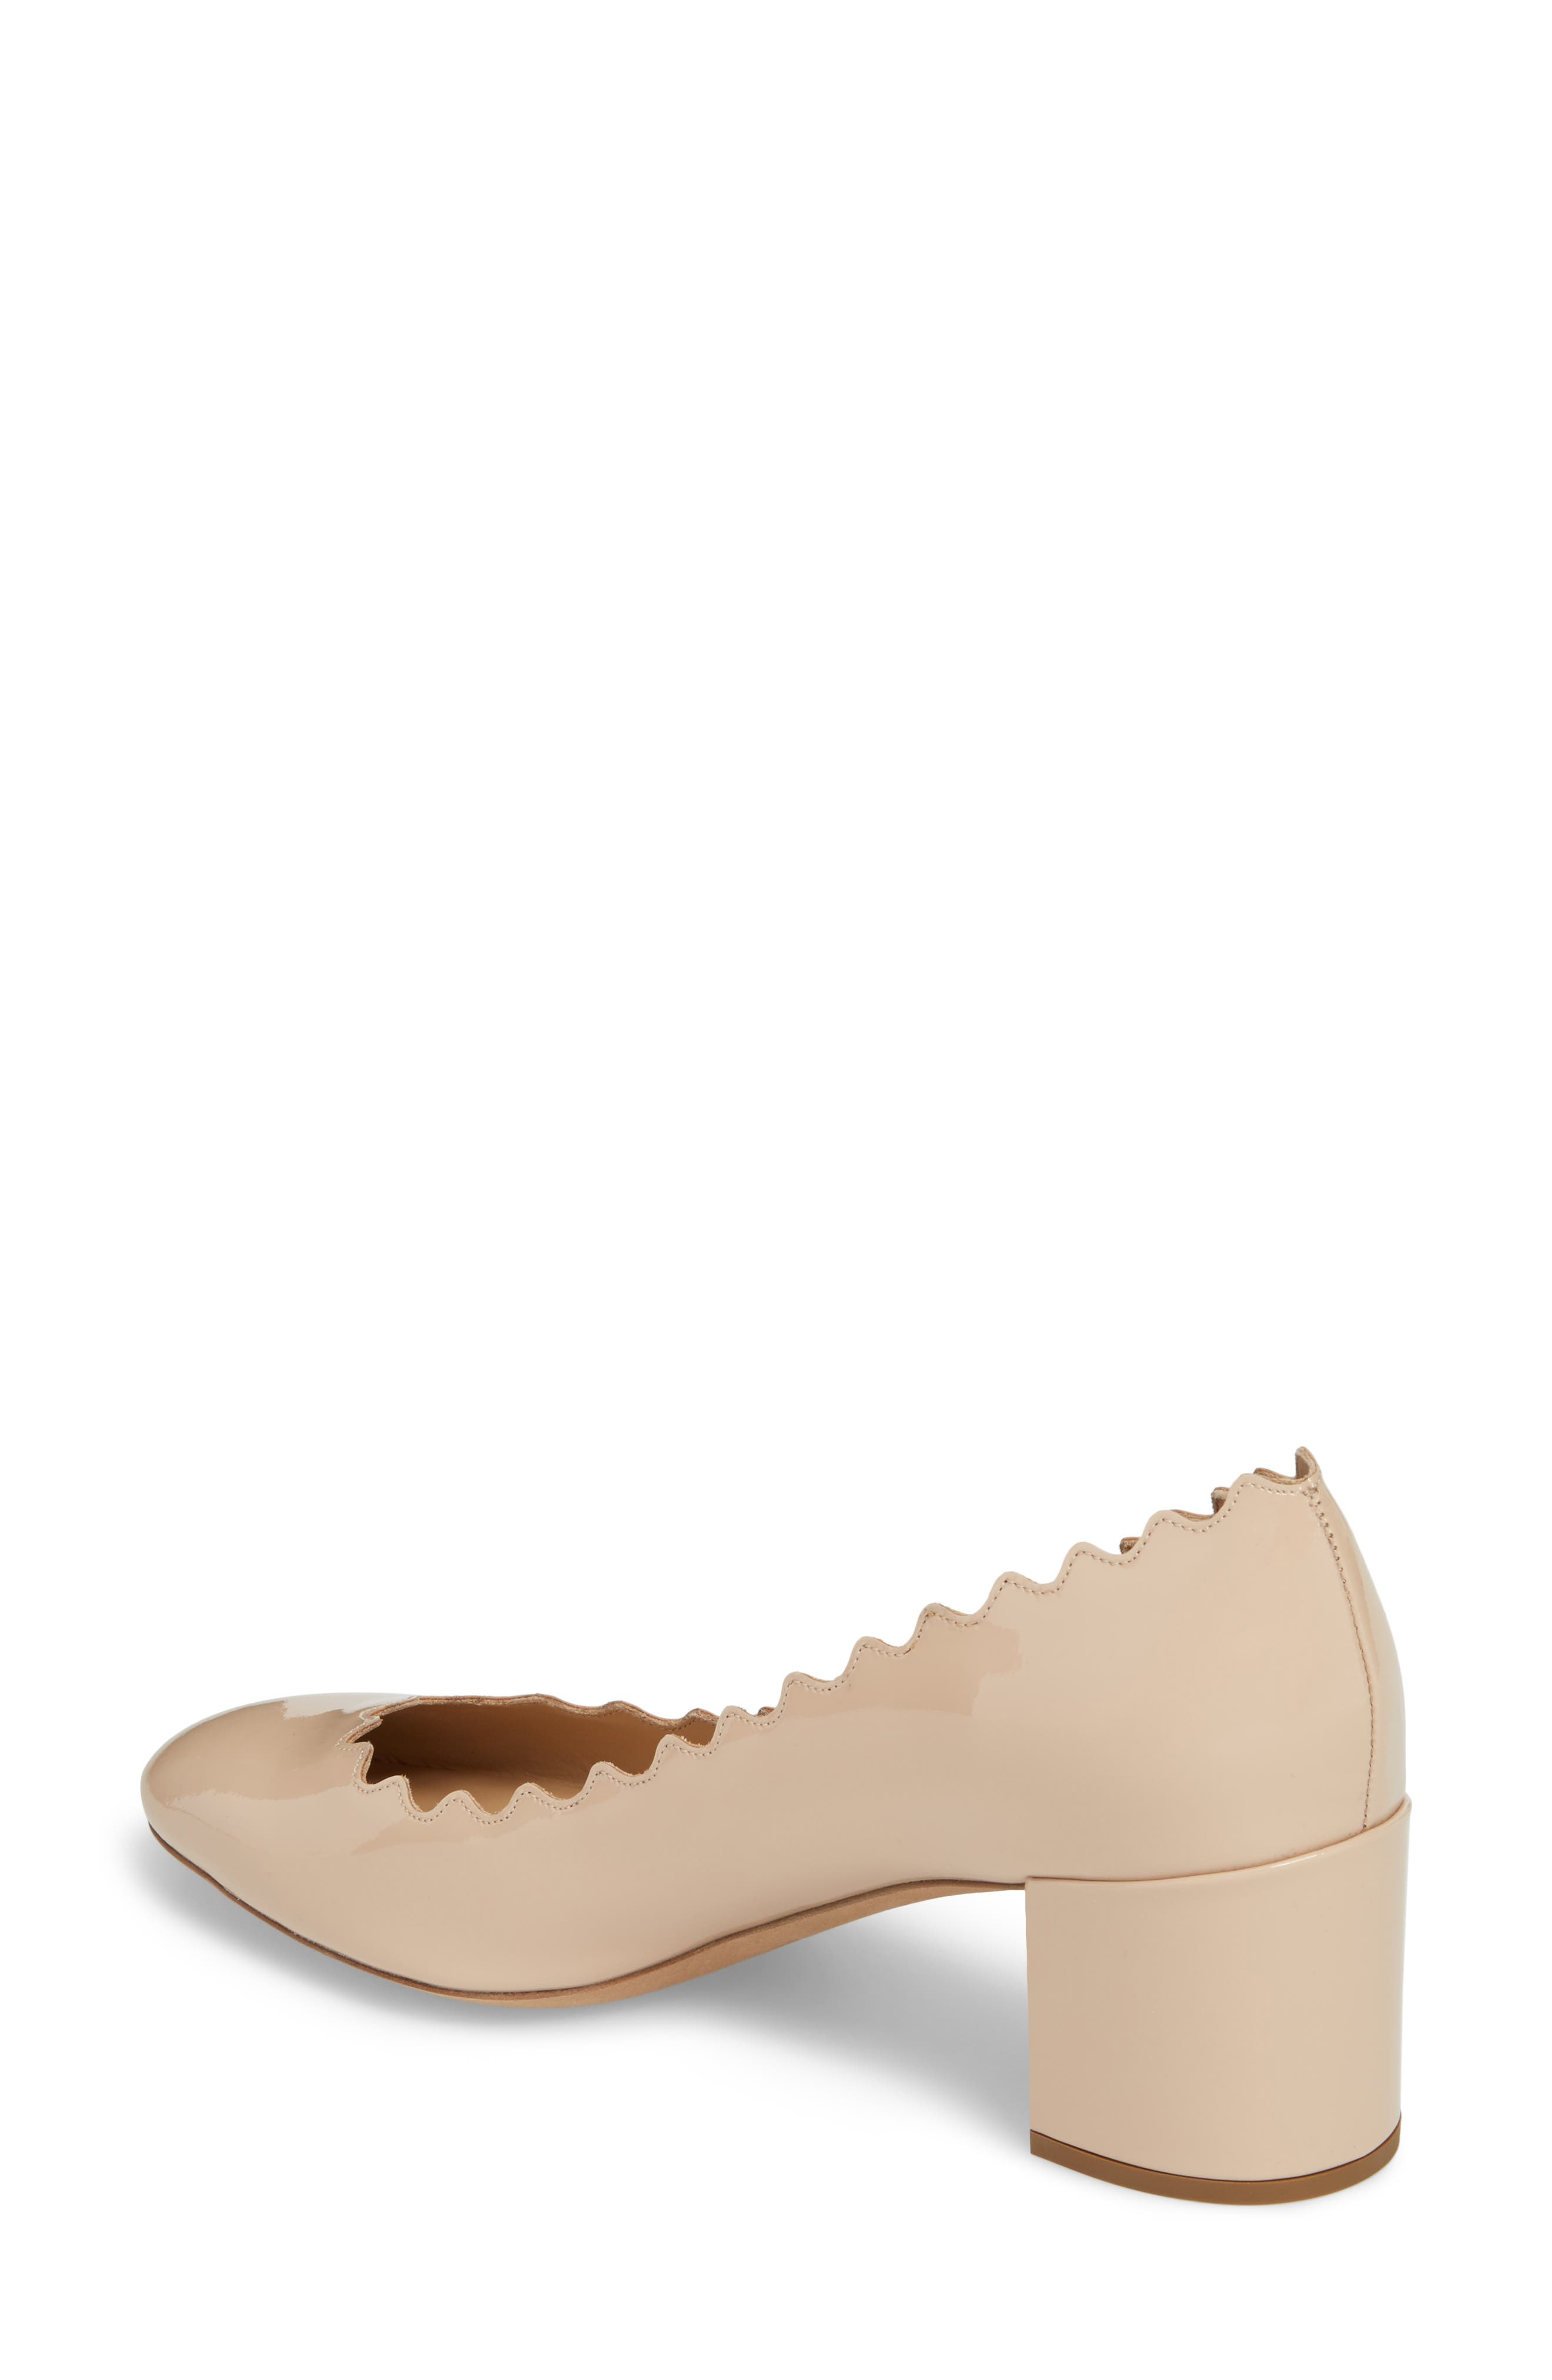 Lauren Pump,                             Alternate thumbnail 2, color,                             Mild Beige Patent